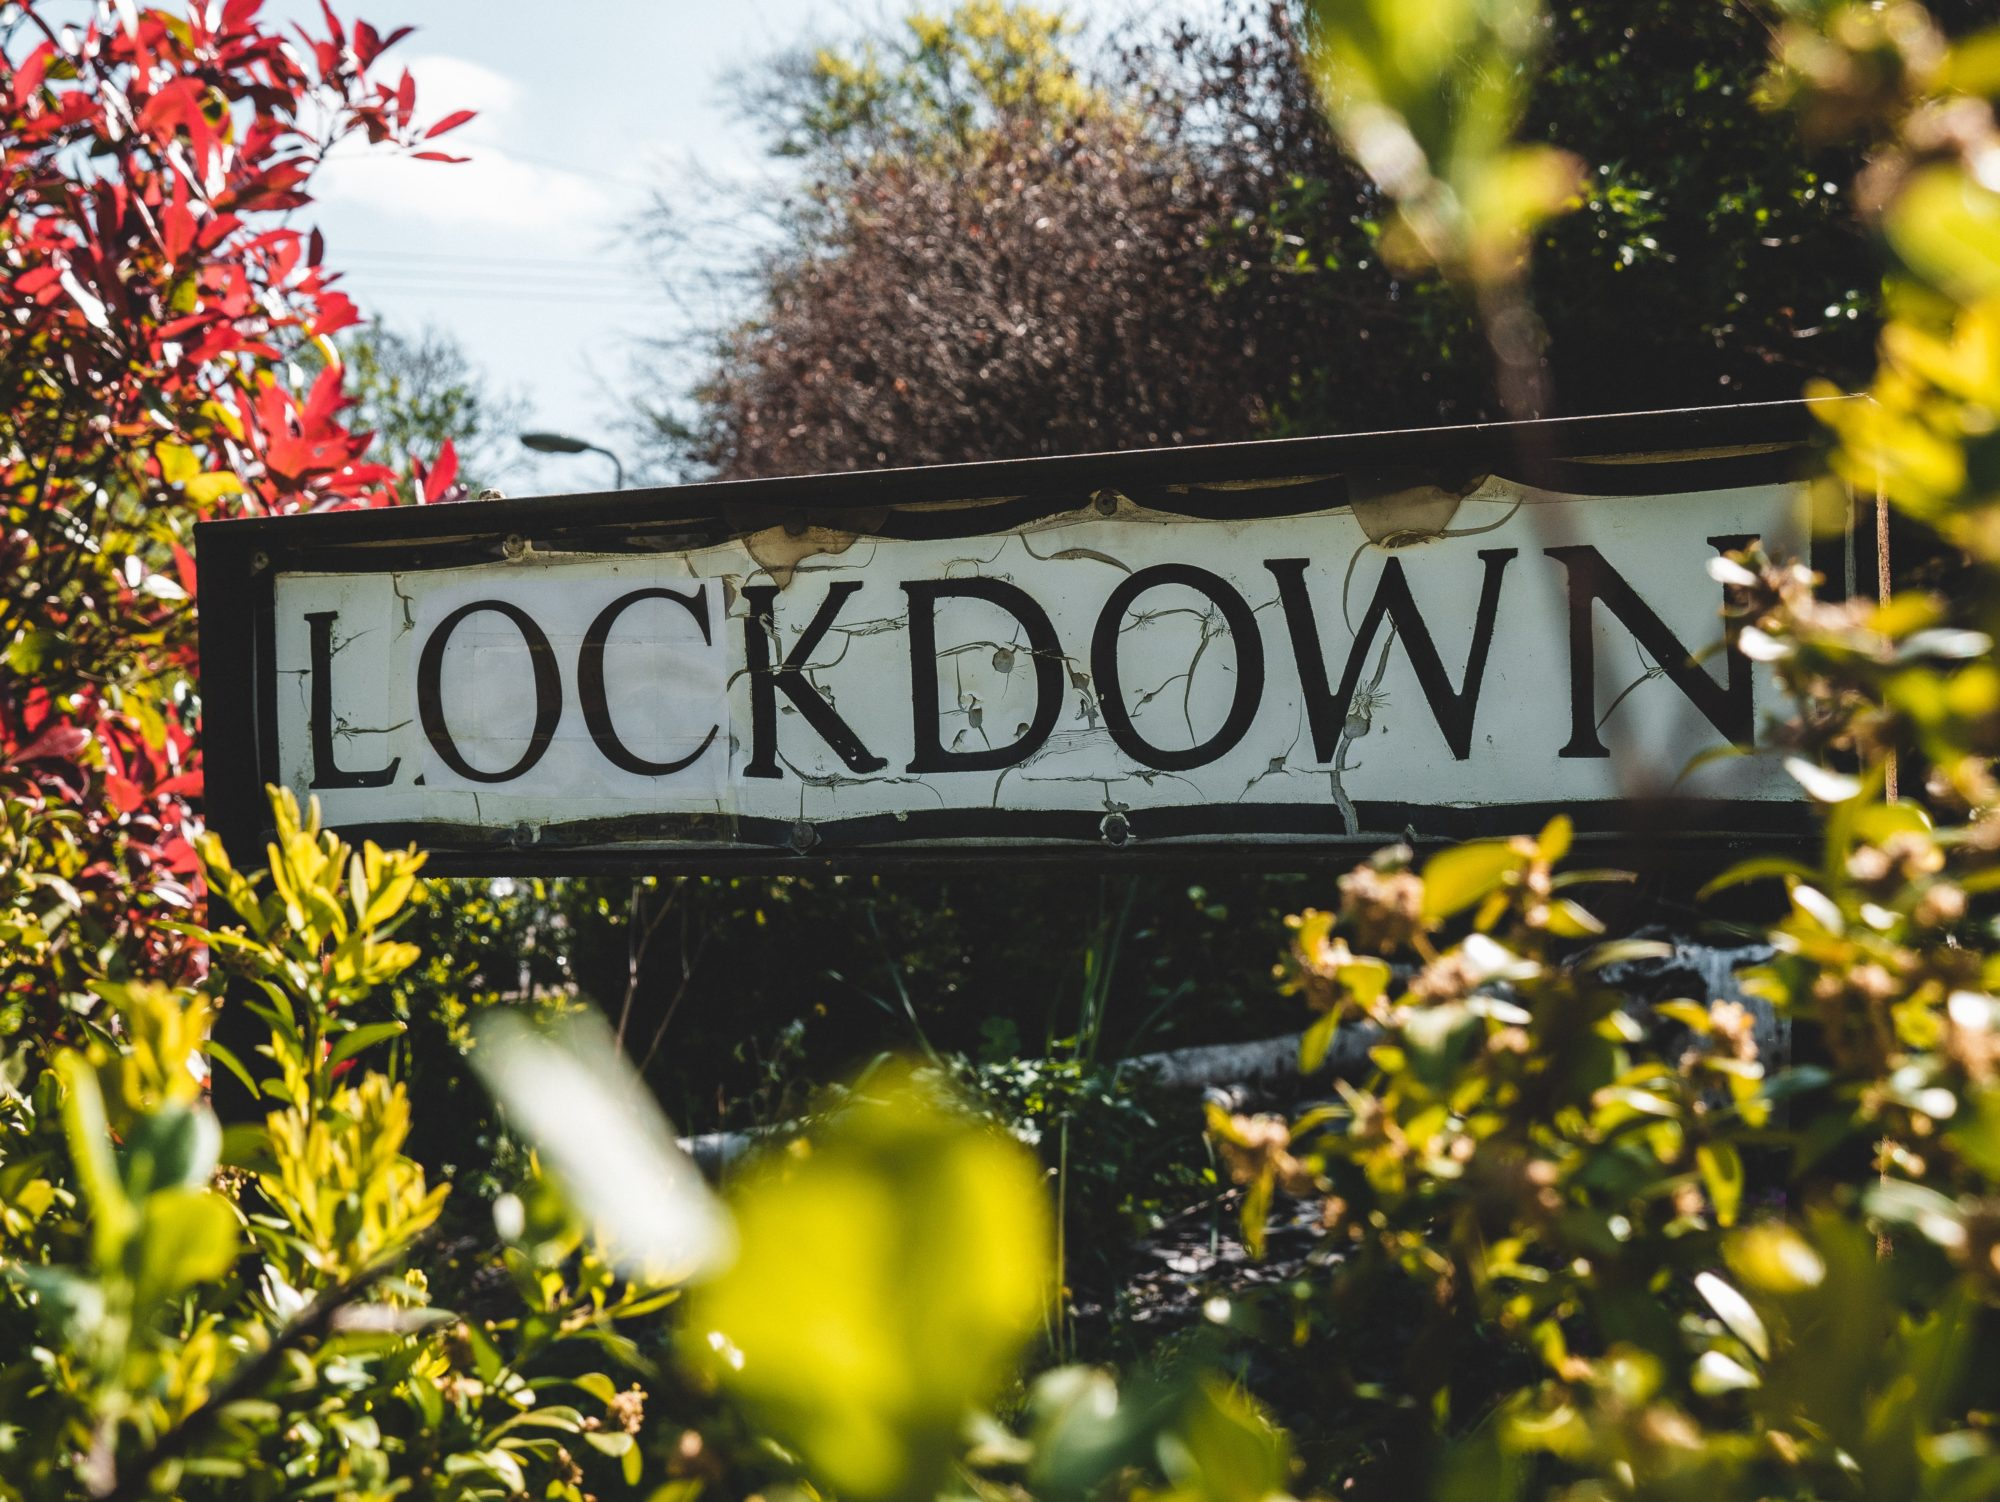 Lockdown road sign